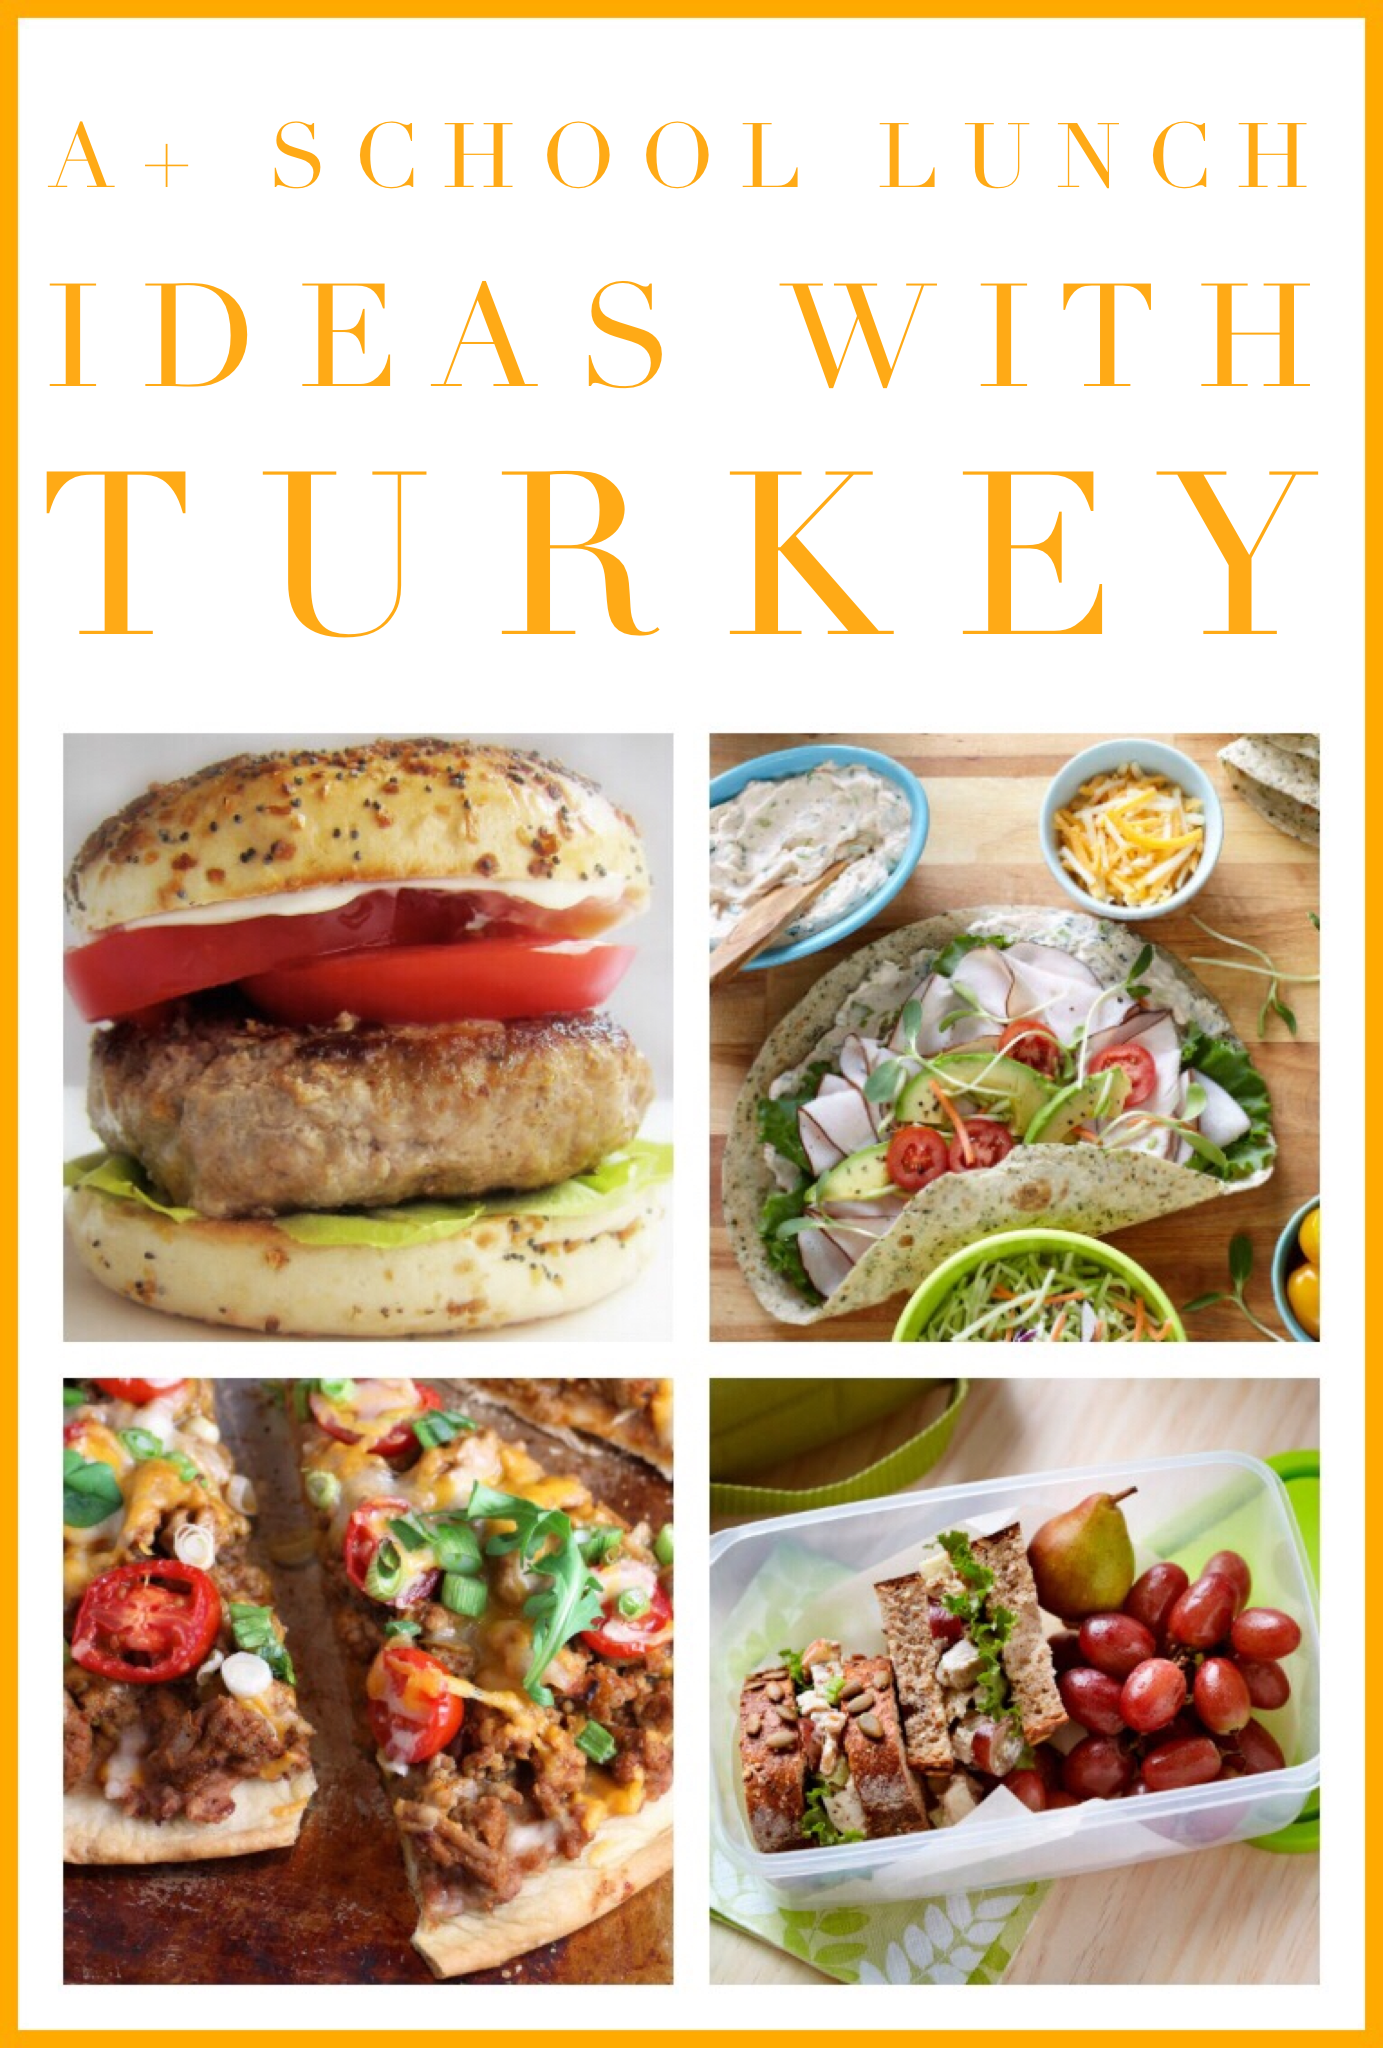 If you're looking for a fresh idea for kids lunches, get creative with Canadian turkey! Here are some A+ turkey lunch ideas: a wrap, salad, burger, sandwich, or even pizza! Find recipes for all of these and more on our recipe page at canadianturkey.ca.